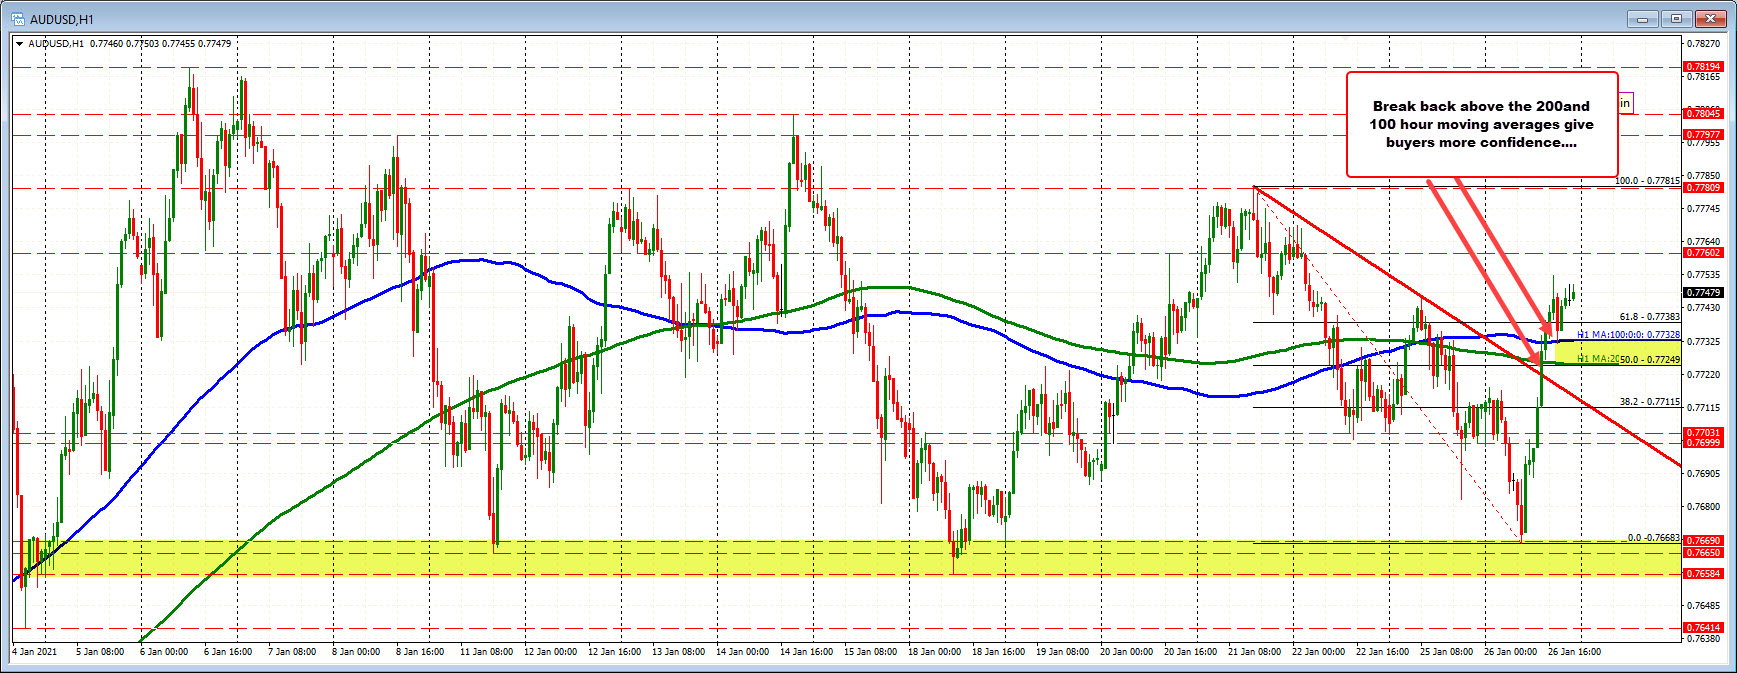 Photo of AUDUSD exceeds MA of 100/200 hours